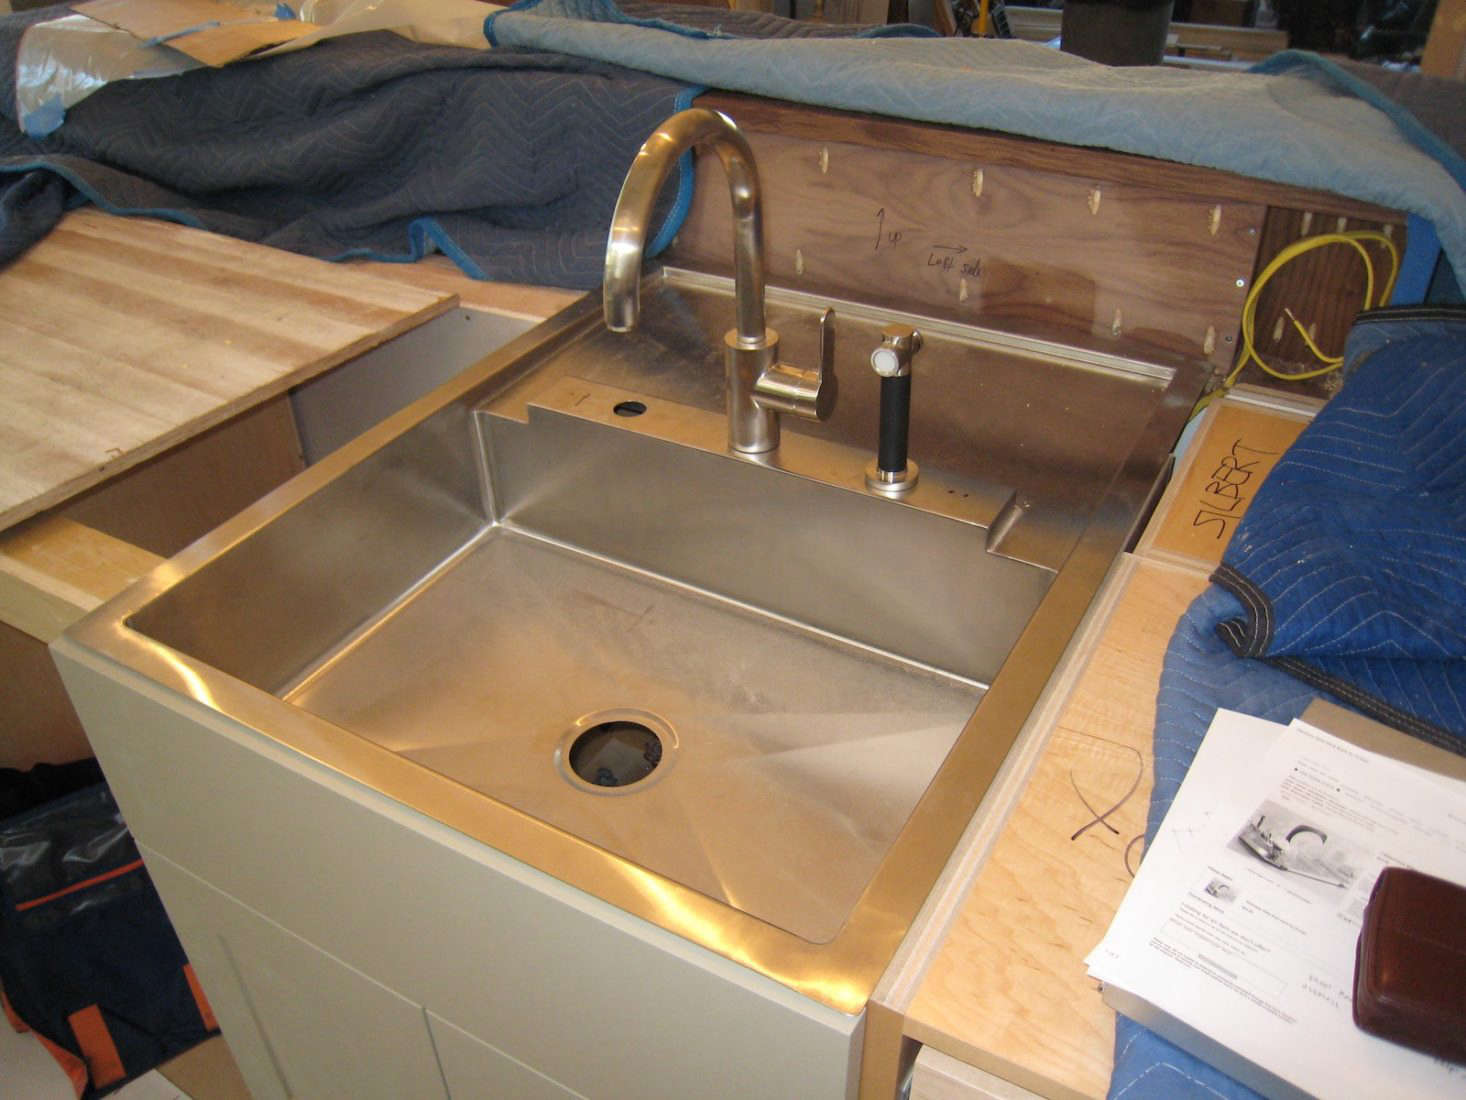 Kitchen Sink Drain Rack Aha hack a behind the sink dish drying rack the organized home buttrick rockridge sink install workwithnaturefo